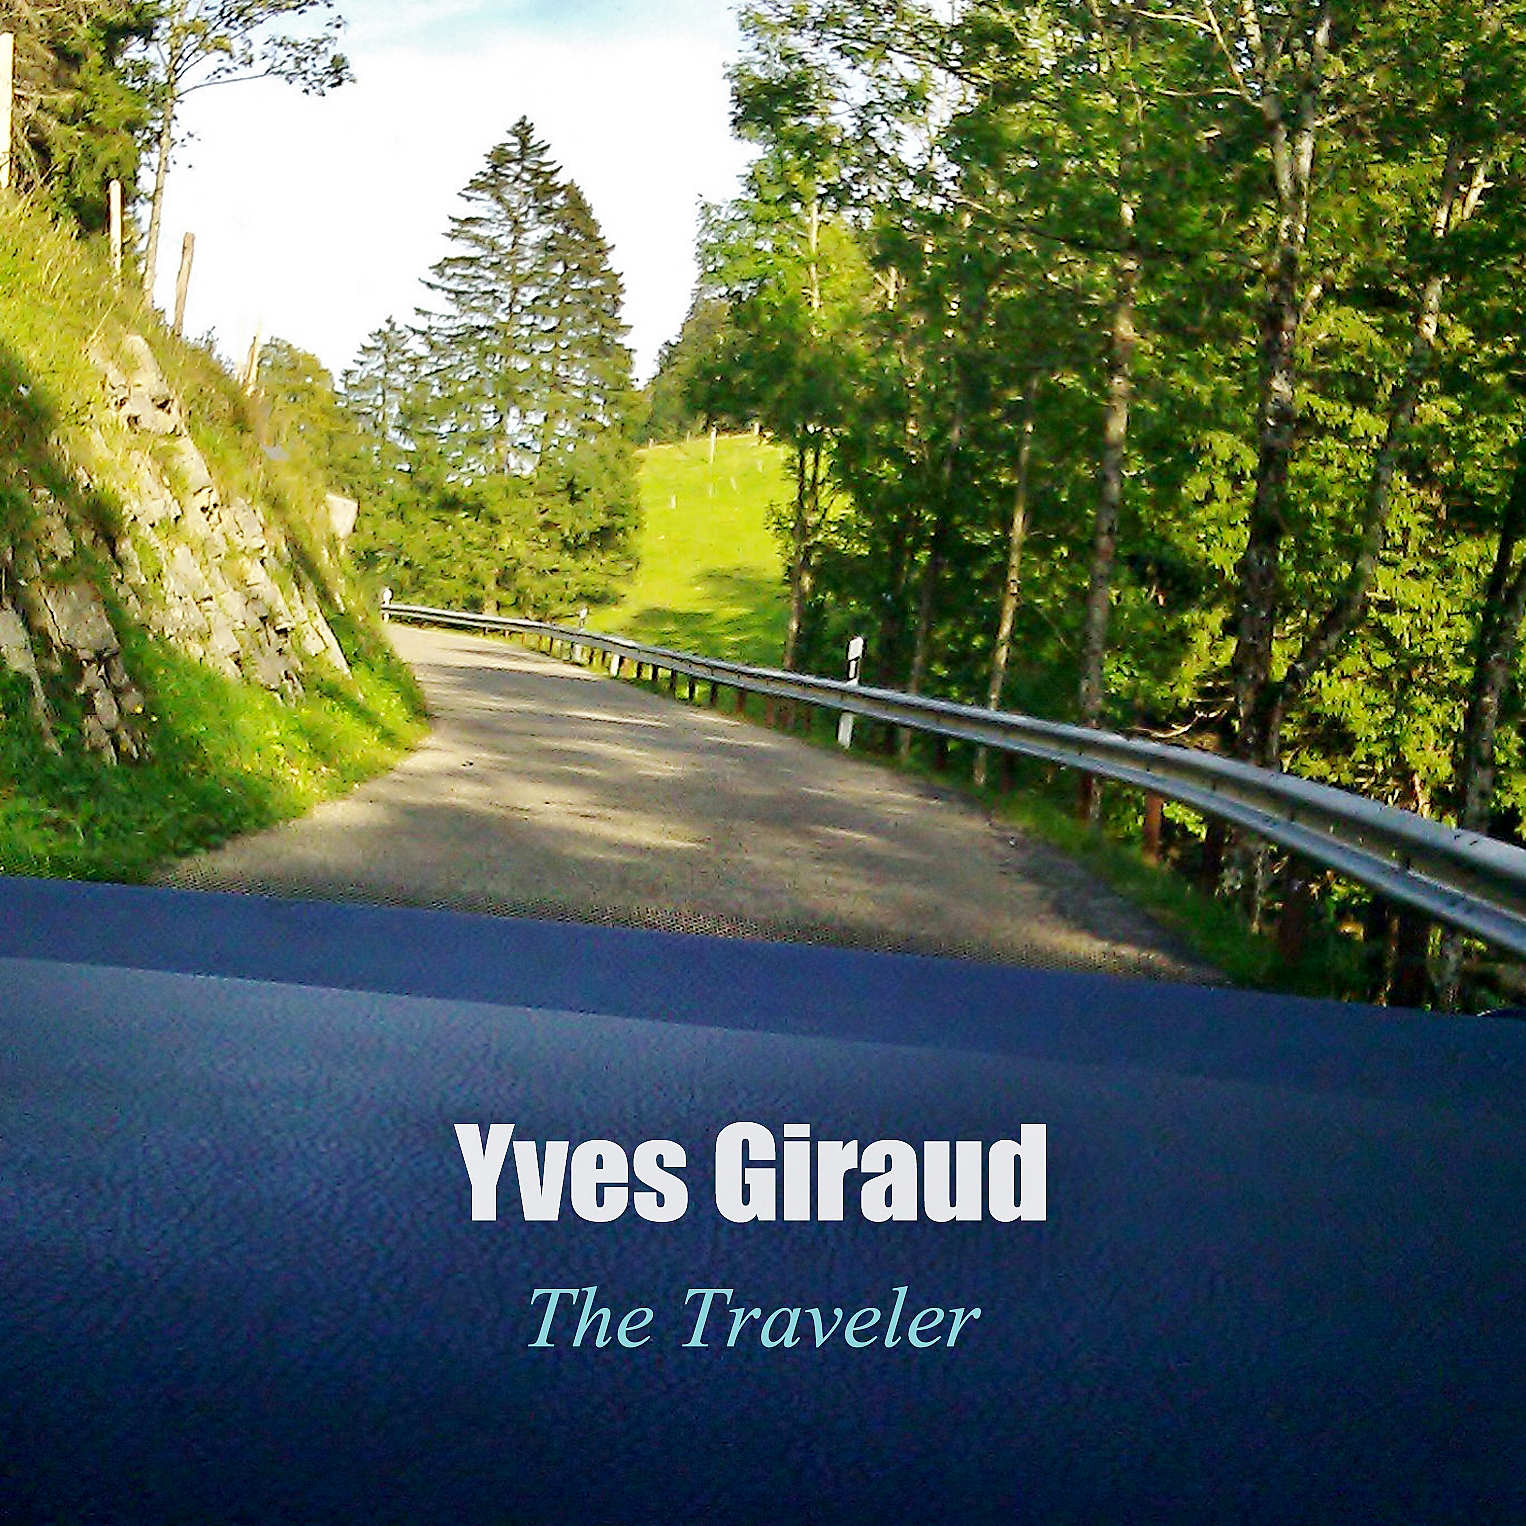 The Traveler  - 10 original acoustic songs - Recorded and produced by Yves Giraud at Studio M31 in Burnsville, North Carolina. Release year: 2014.